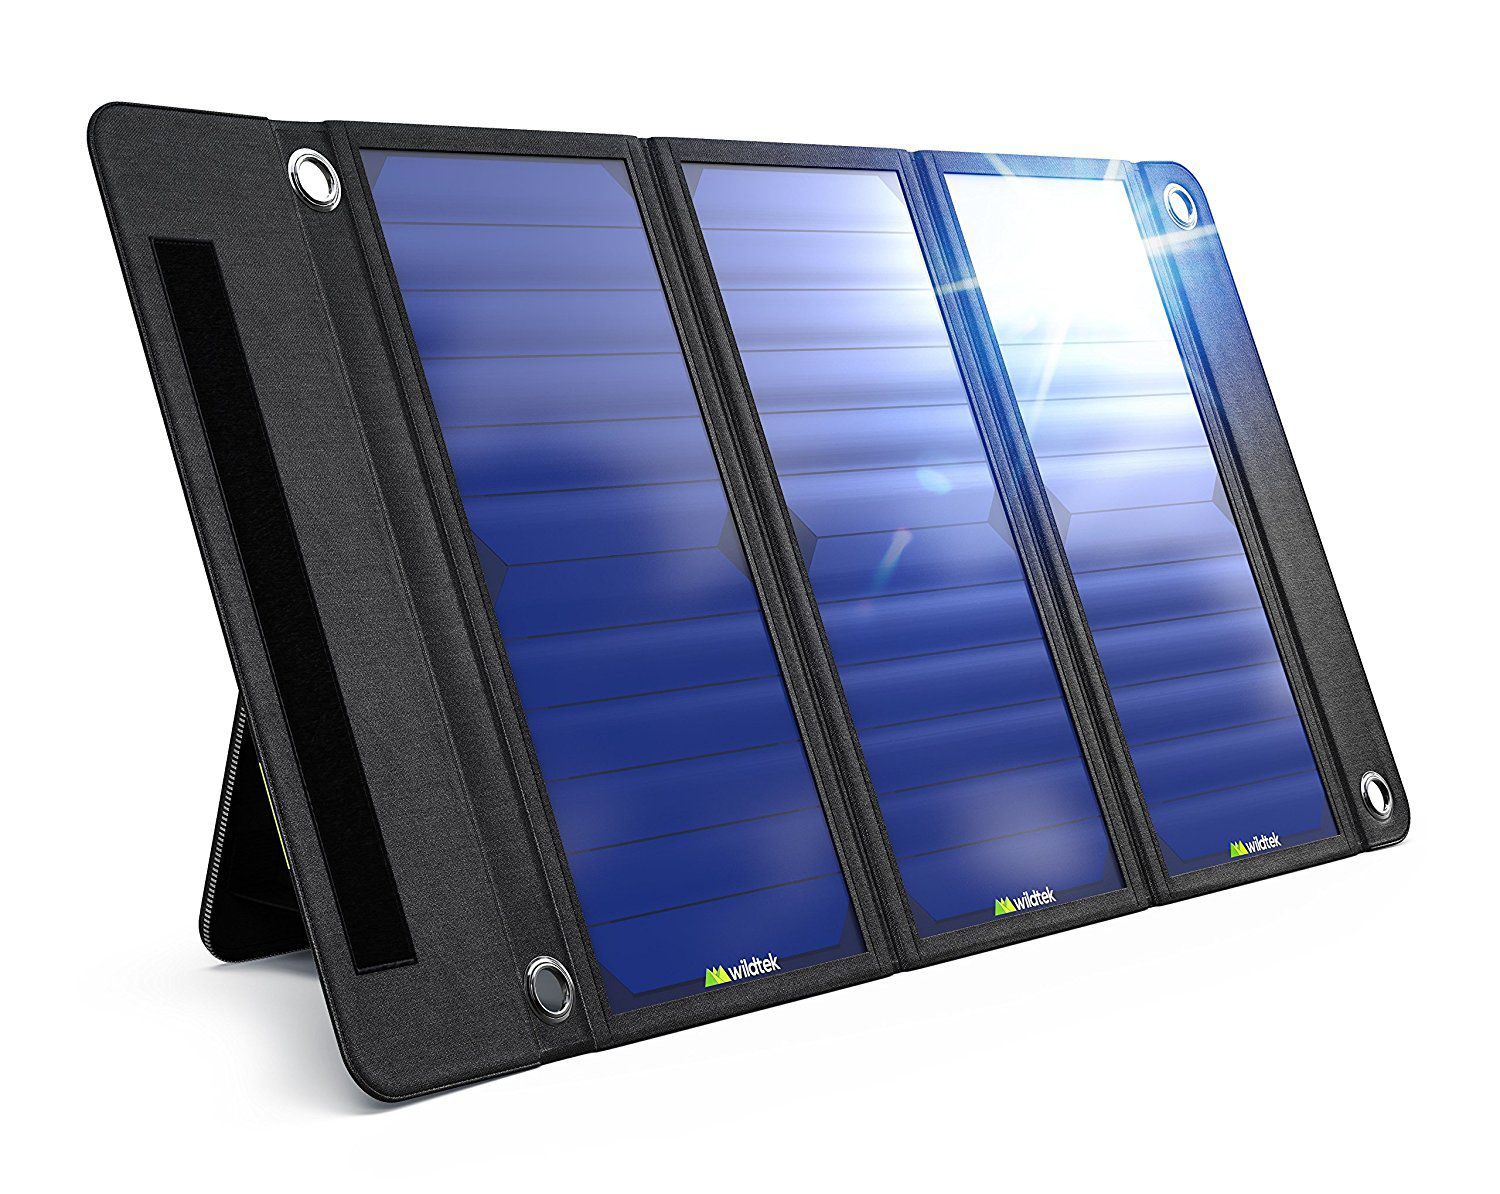 Best Solar Phone Charger 2019 The 8 Best Portable Solar Chargers of 2019